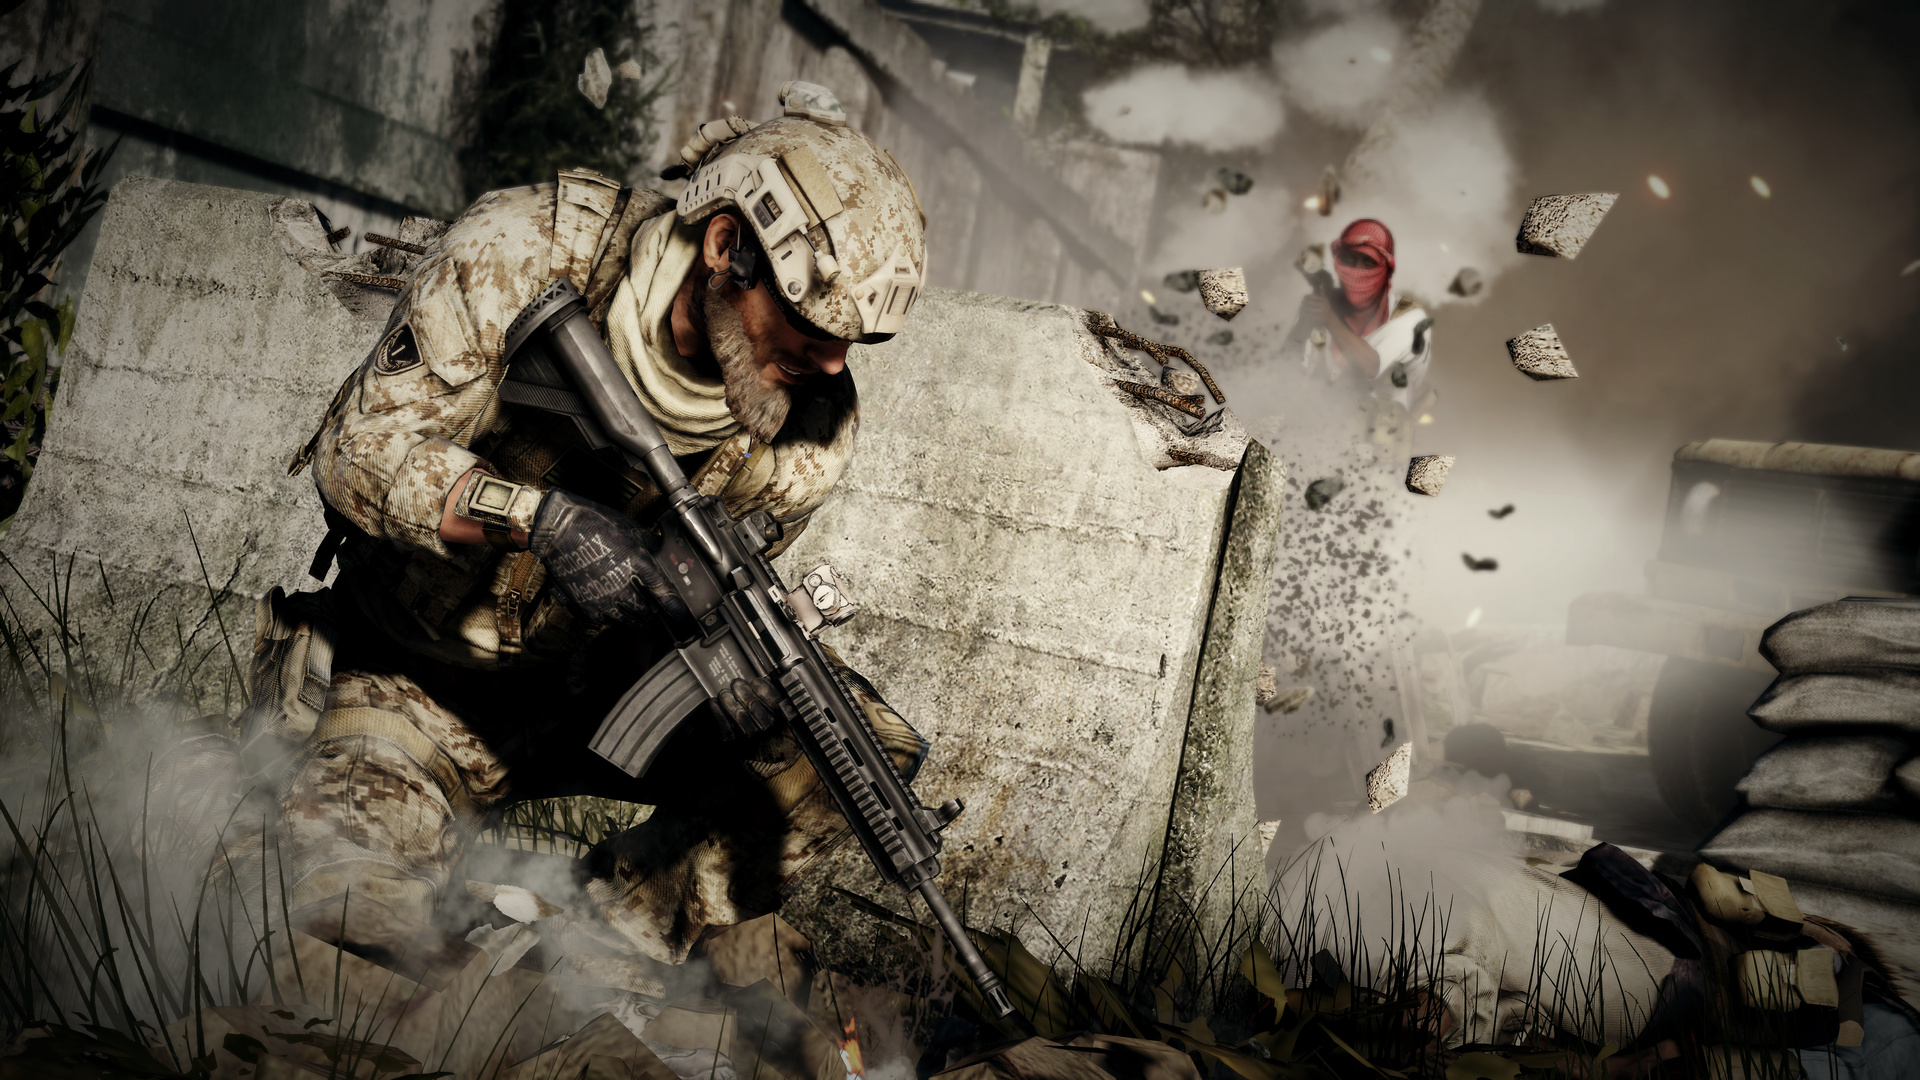 file_4601_MoH_Warfighter_1